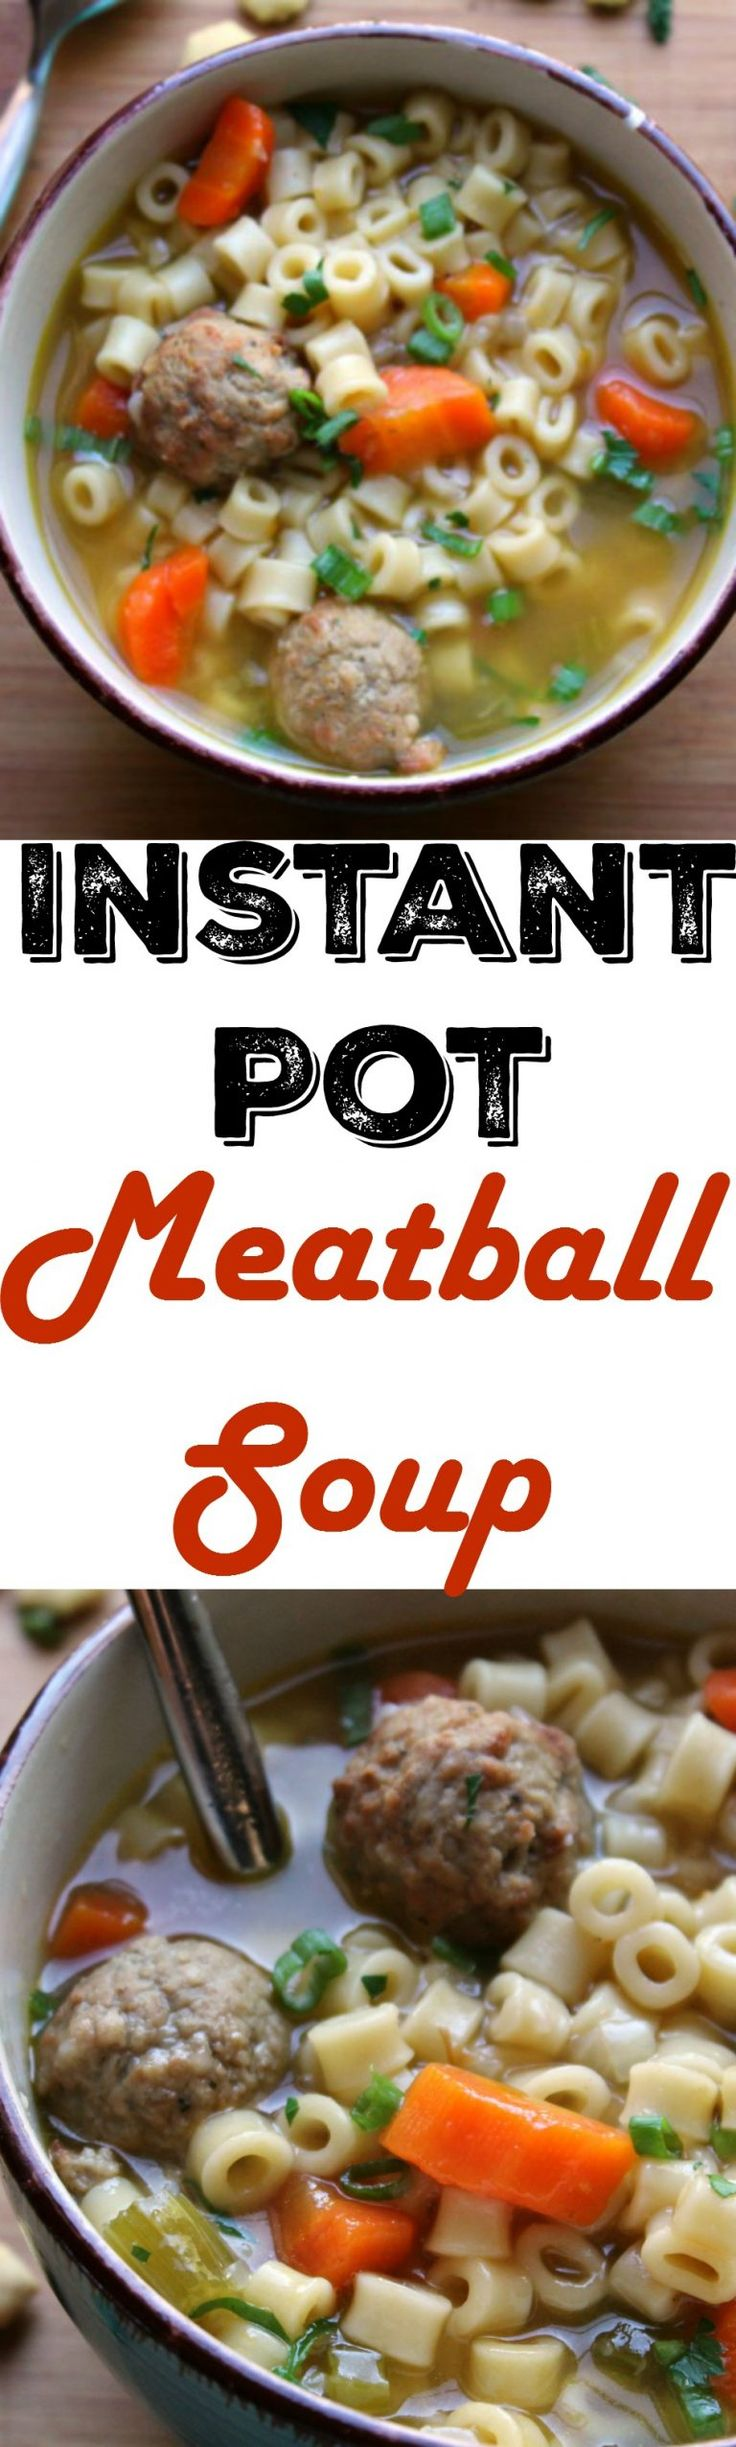 Instant Pot Meatball Soup Recipe  -  A quick and easy, family-friendly dinner option.  Thanks to frozen meatballs and the instant pot, this meal cooks up in just under 10 minutes!